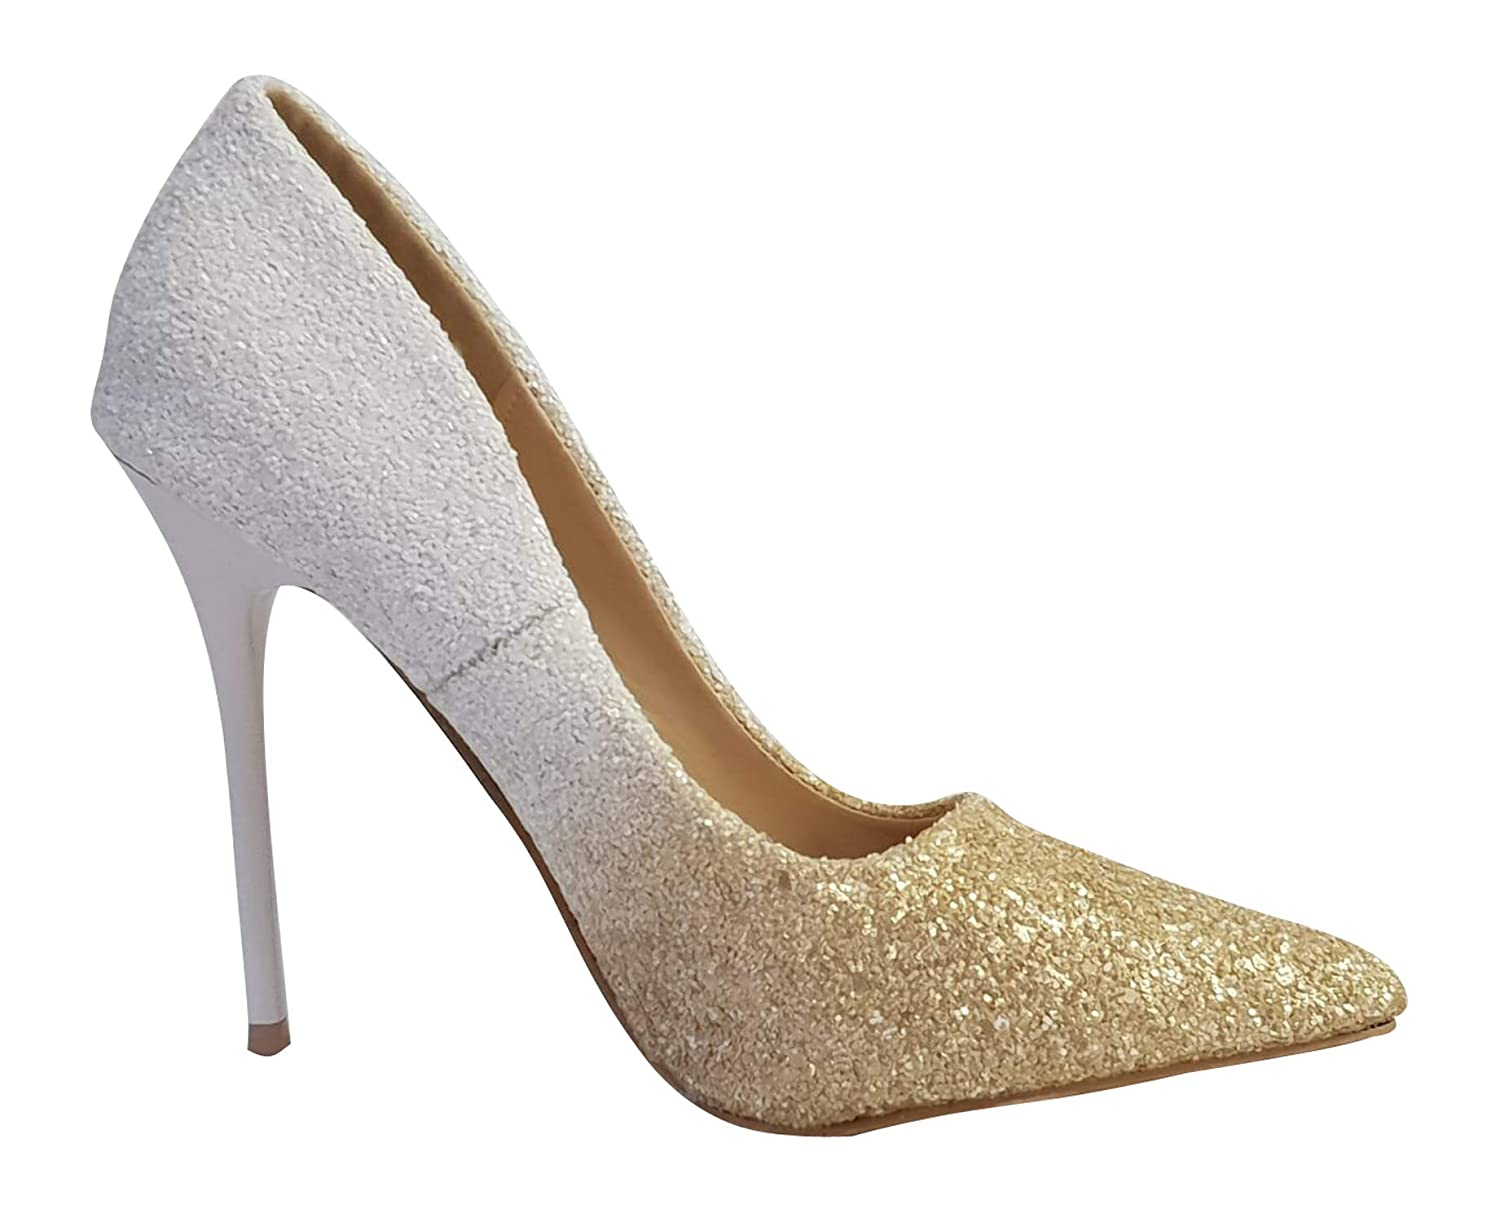 0045 New Ladies Ombre Glitter High Heel Party Evening Court Shoes